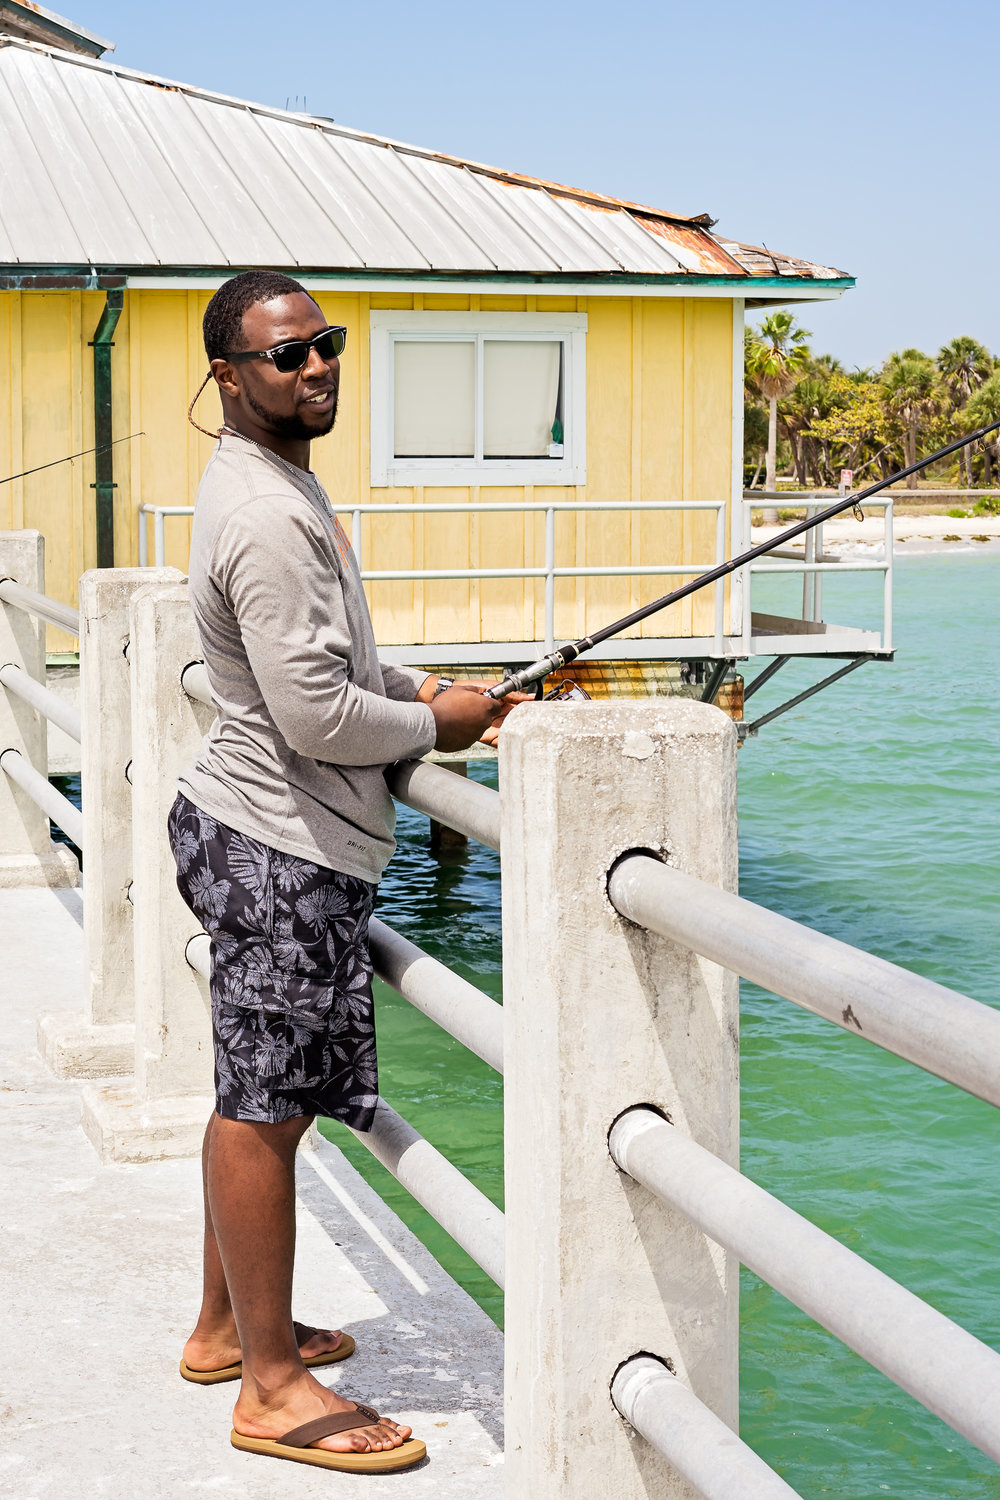 Quay Moncrief, a fisherman from Montgomery, Alabama, out fishing with his finance and her family. While Quay did not catch a single fish, he still enjoyed his time at the Fort Desoto pier. He said he fell in love with the area and would consider moving down to the St Petersburg, Florida area.